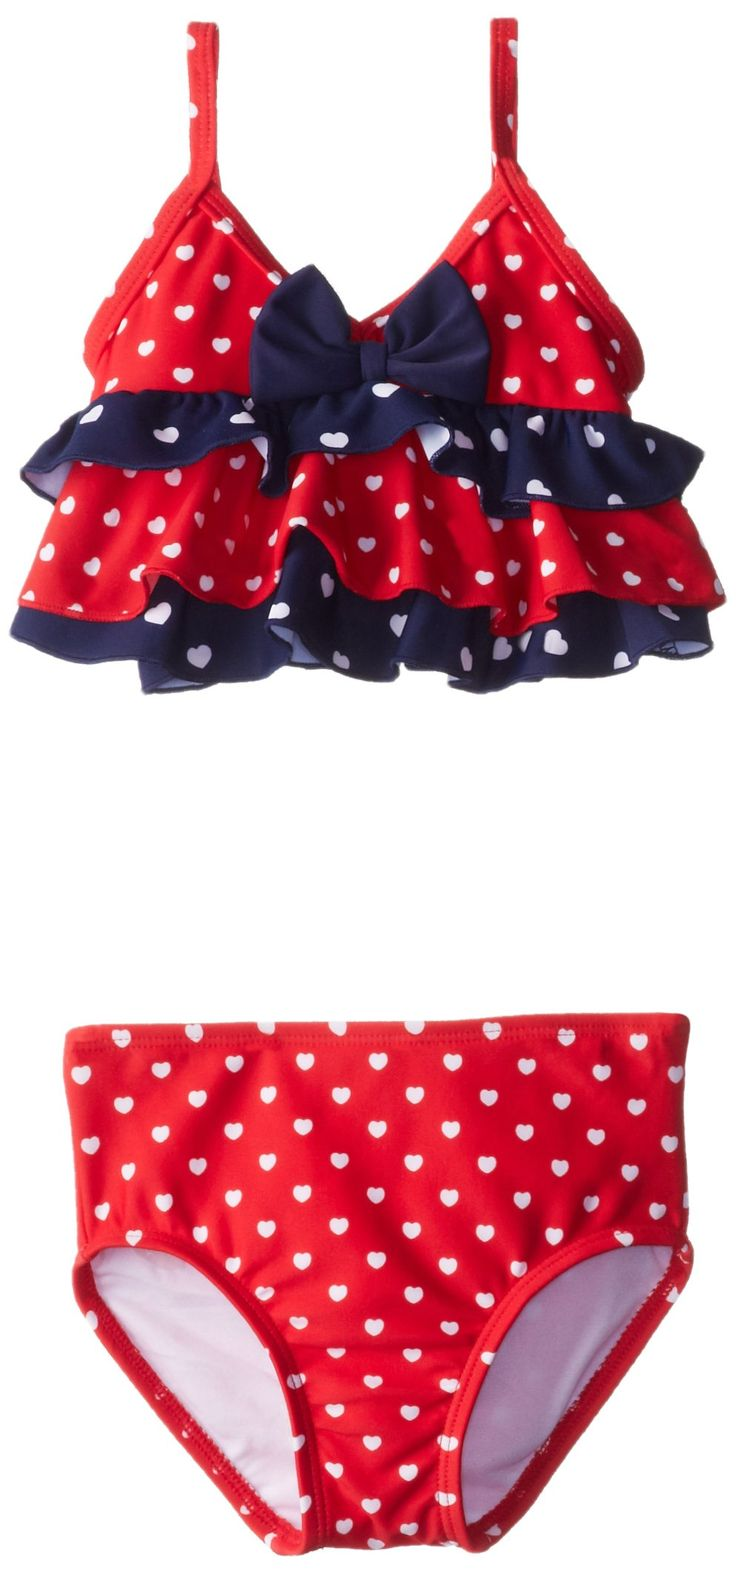 Hartstrings Little Girls' Girls' Heart Polka Dot Two Piece Bathing Suit, Heart Print, 2T